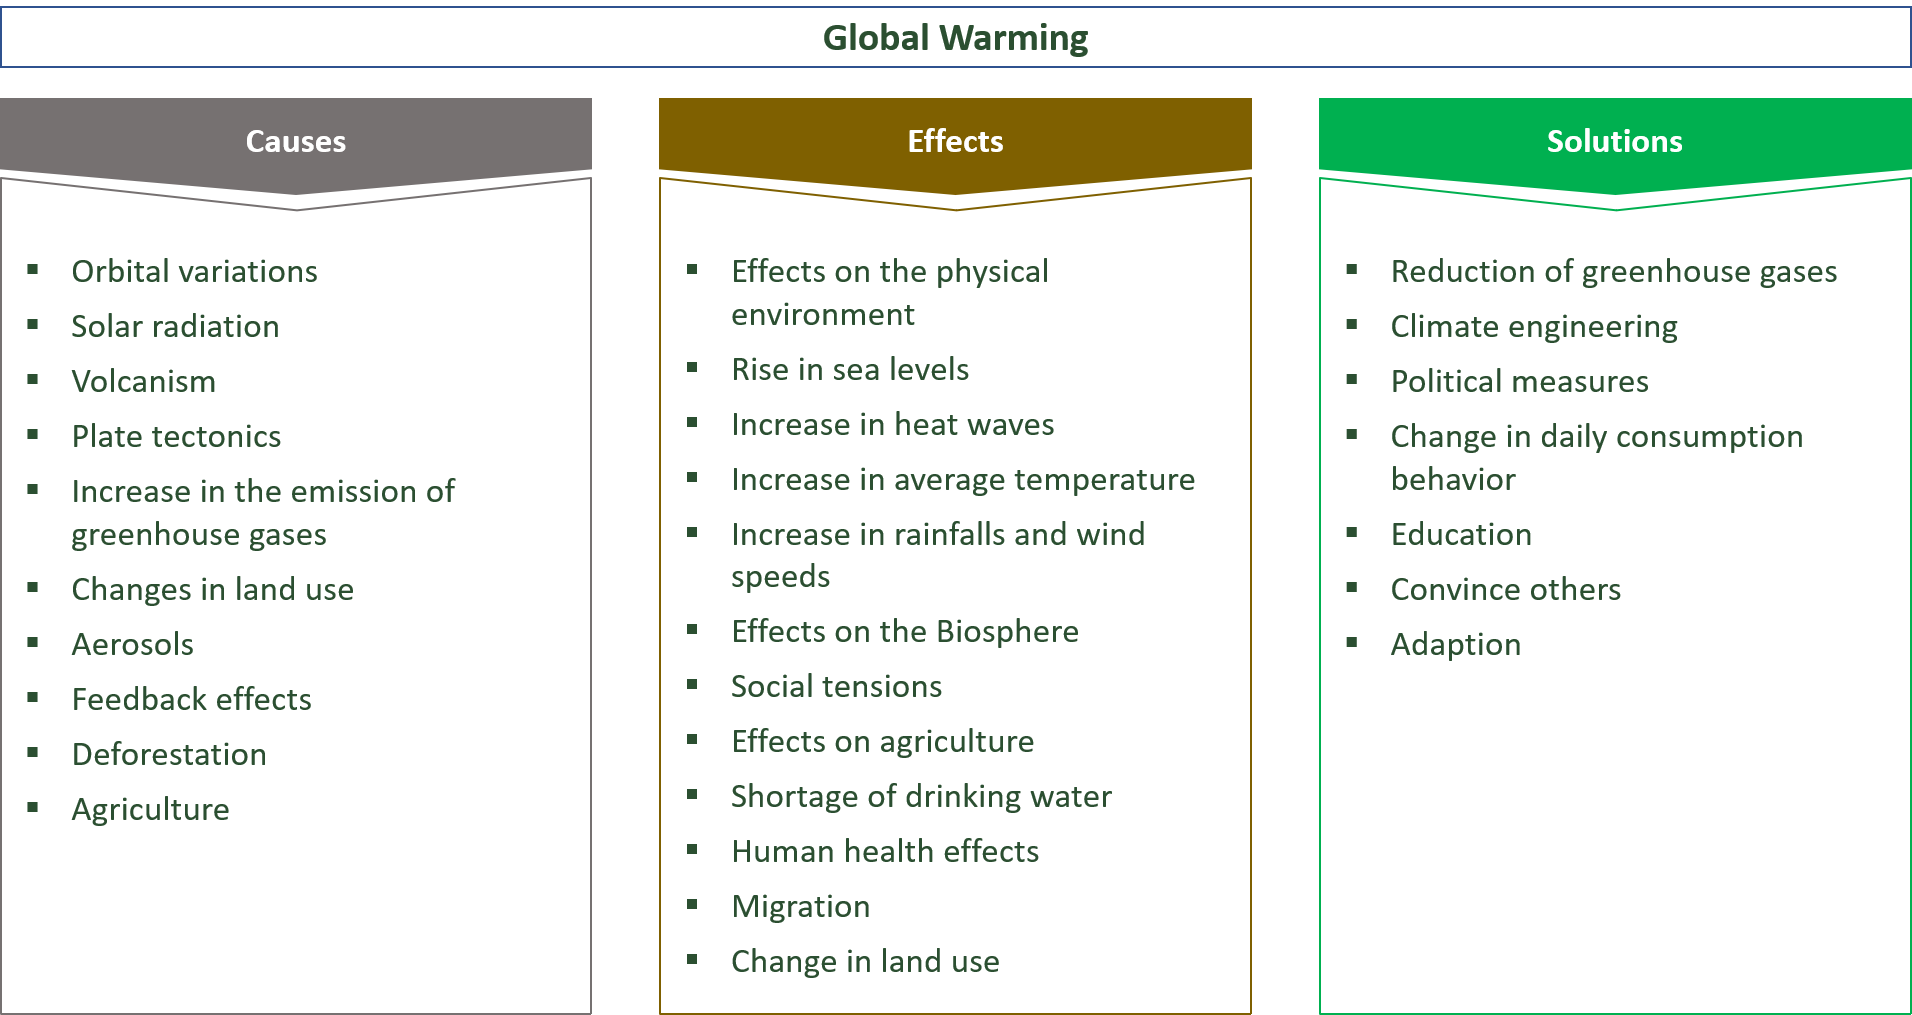 causes, effects and solutions for global warming